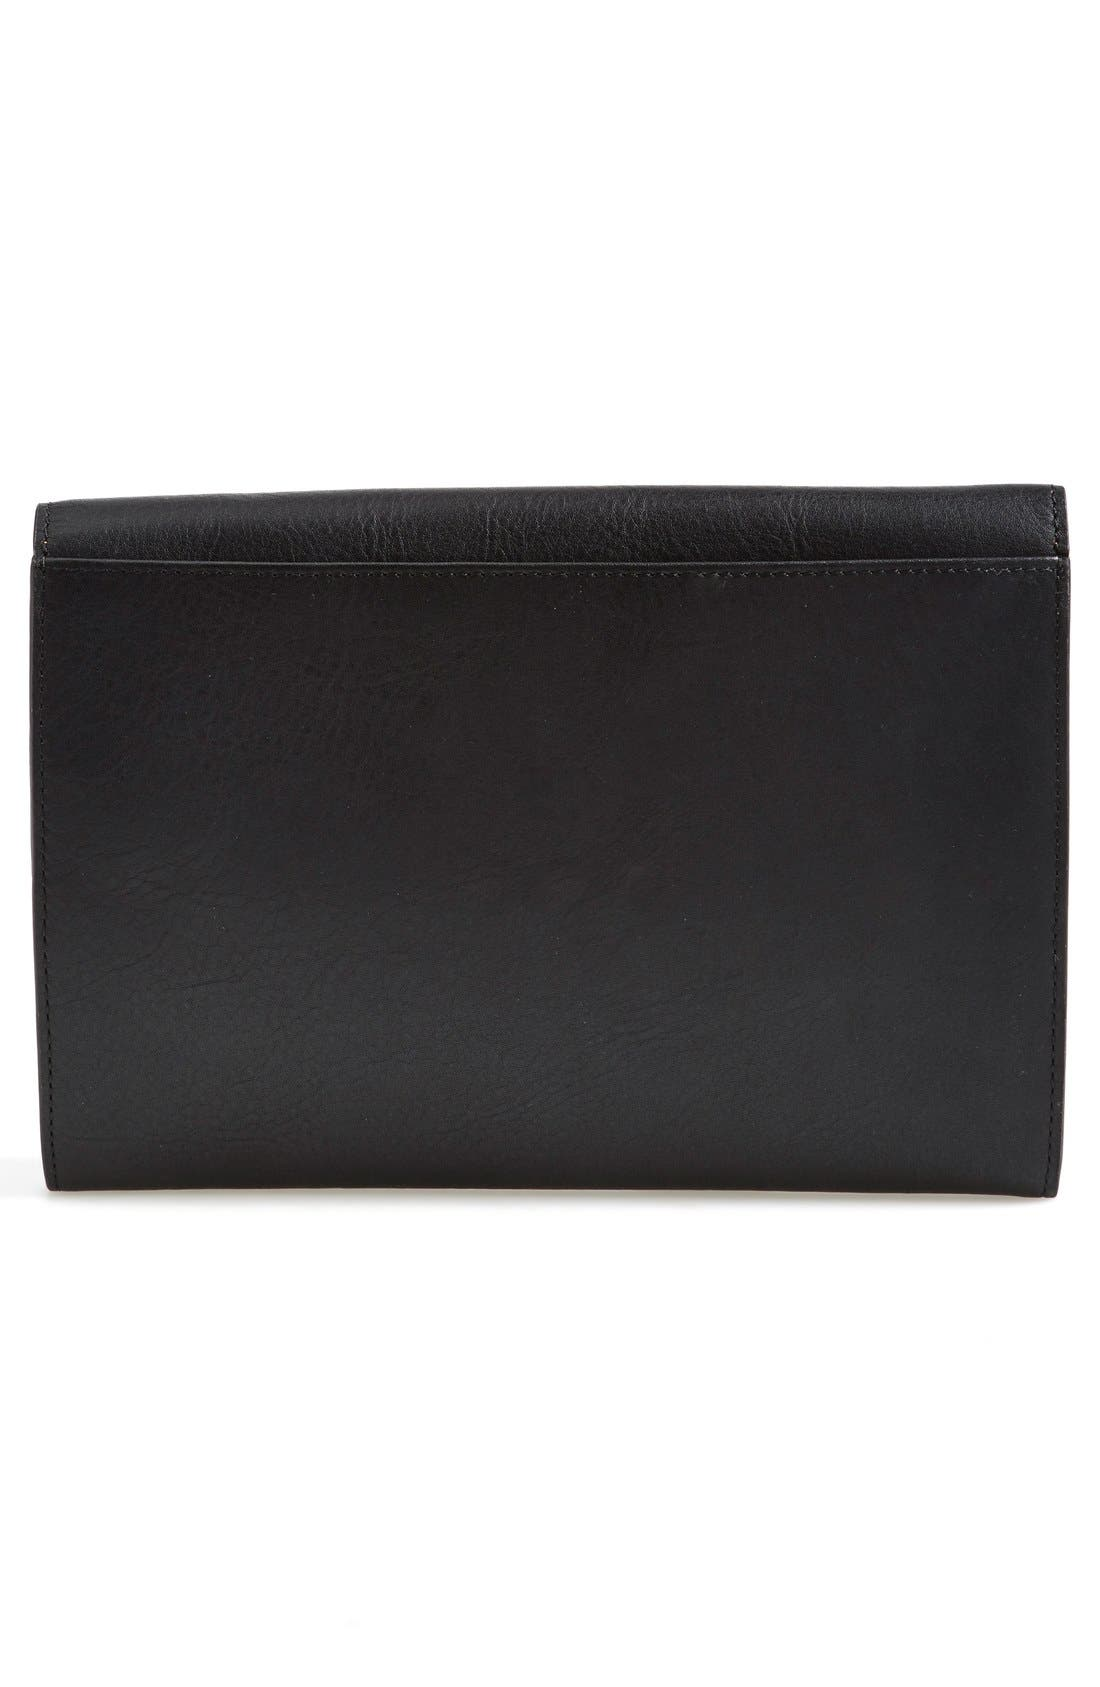 Alternate Image 4  - KENZO 'Raindrop' Leather Clutch